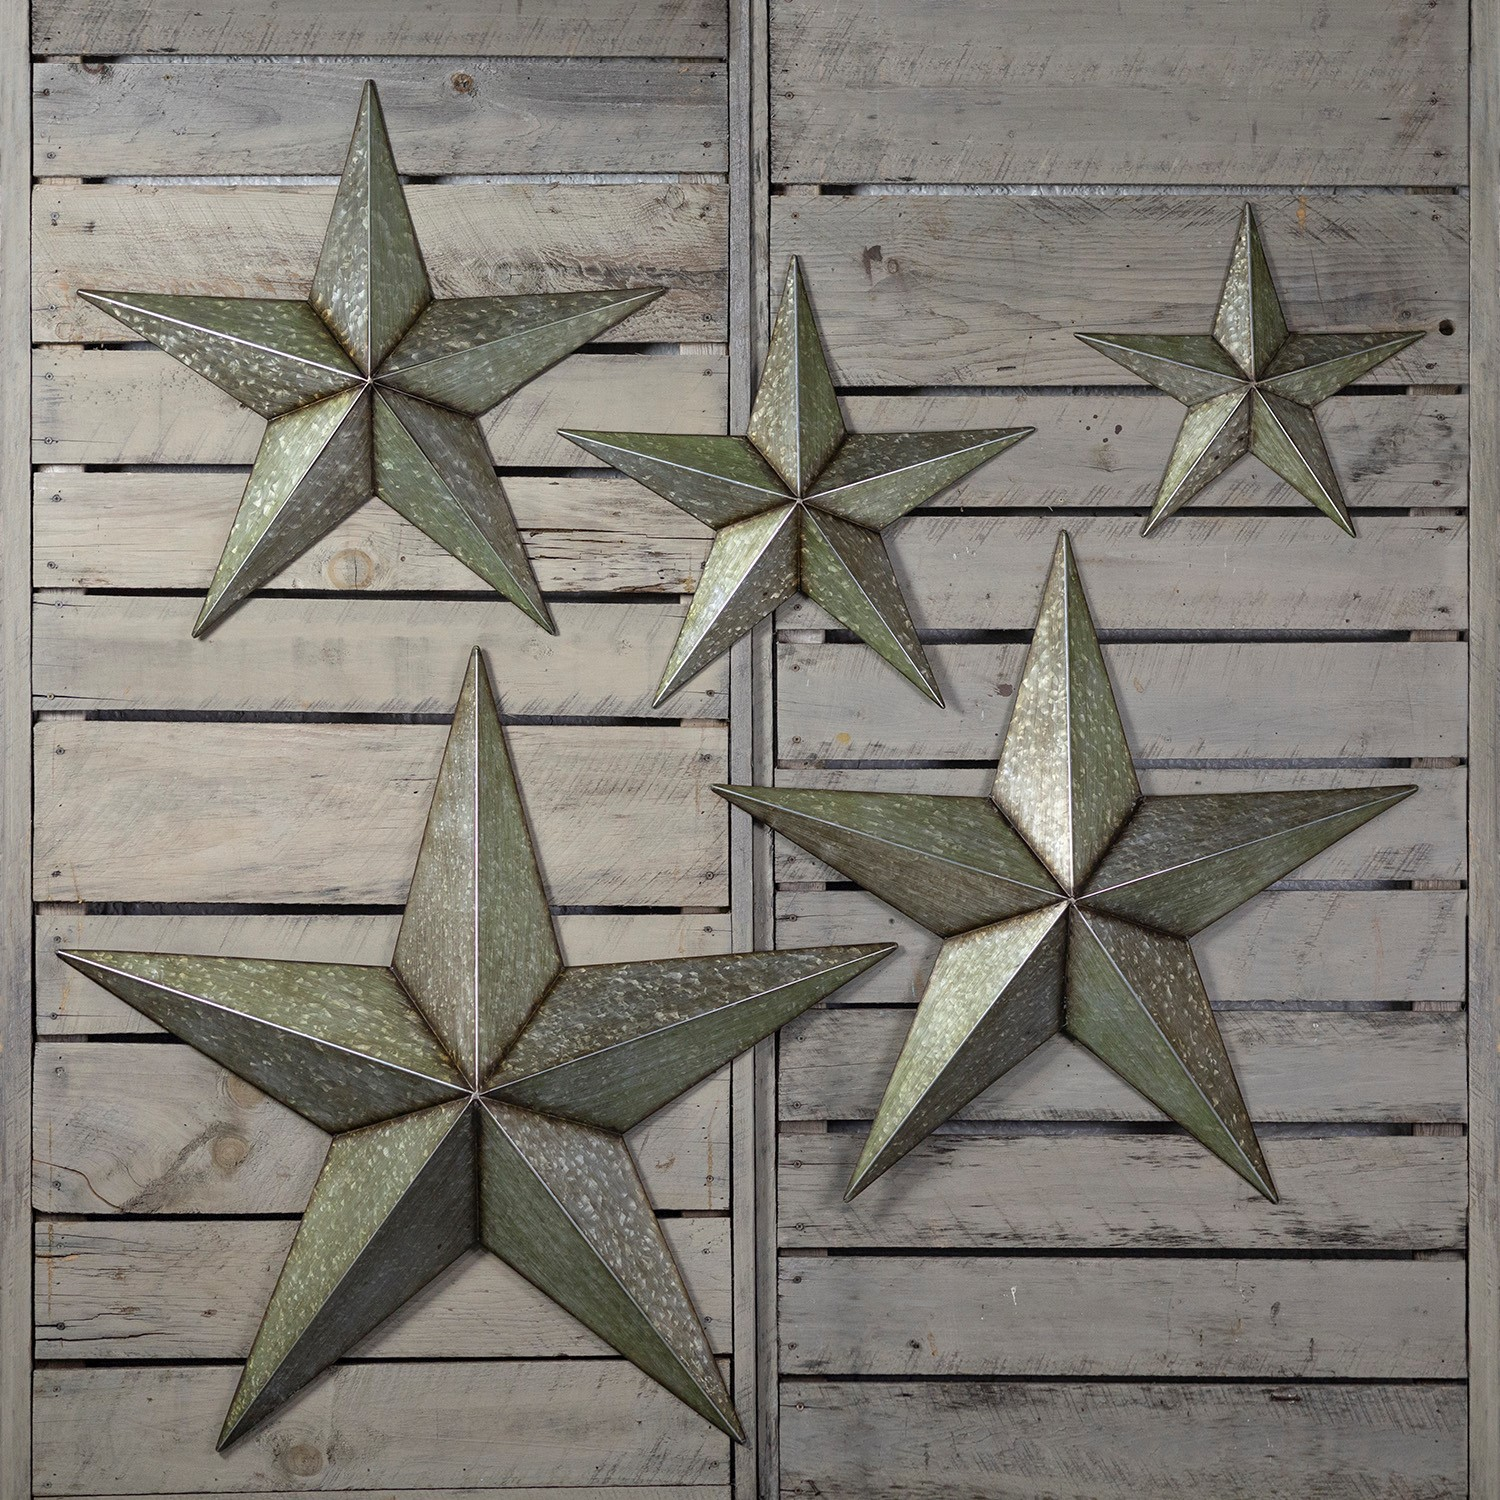 Set of 5 Galvanized Star Wall Decorations